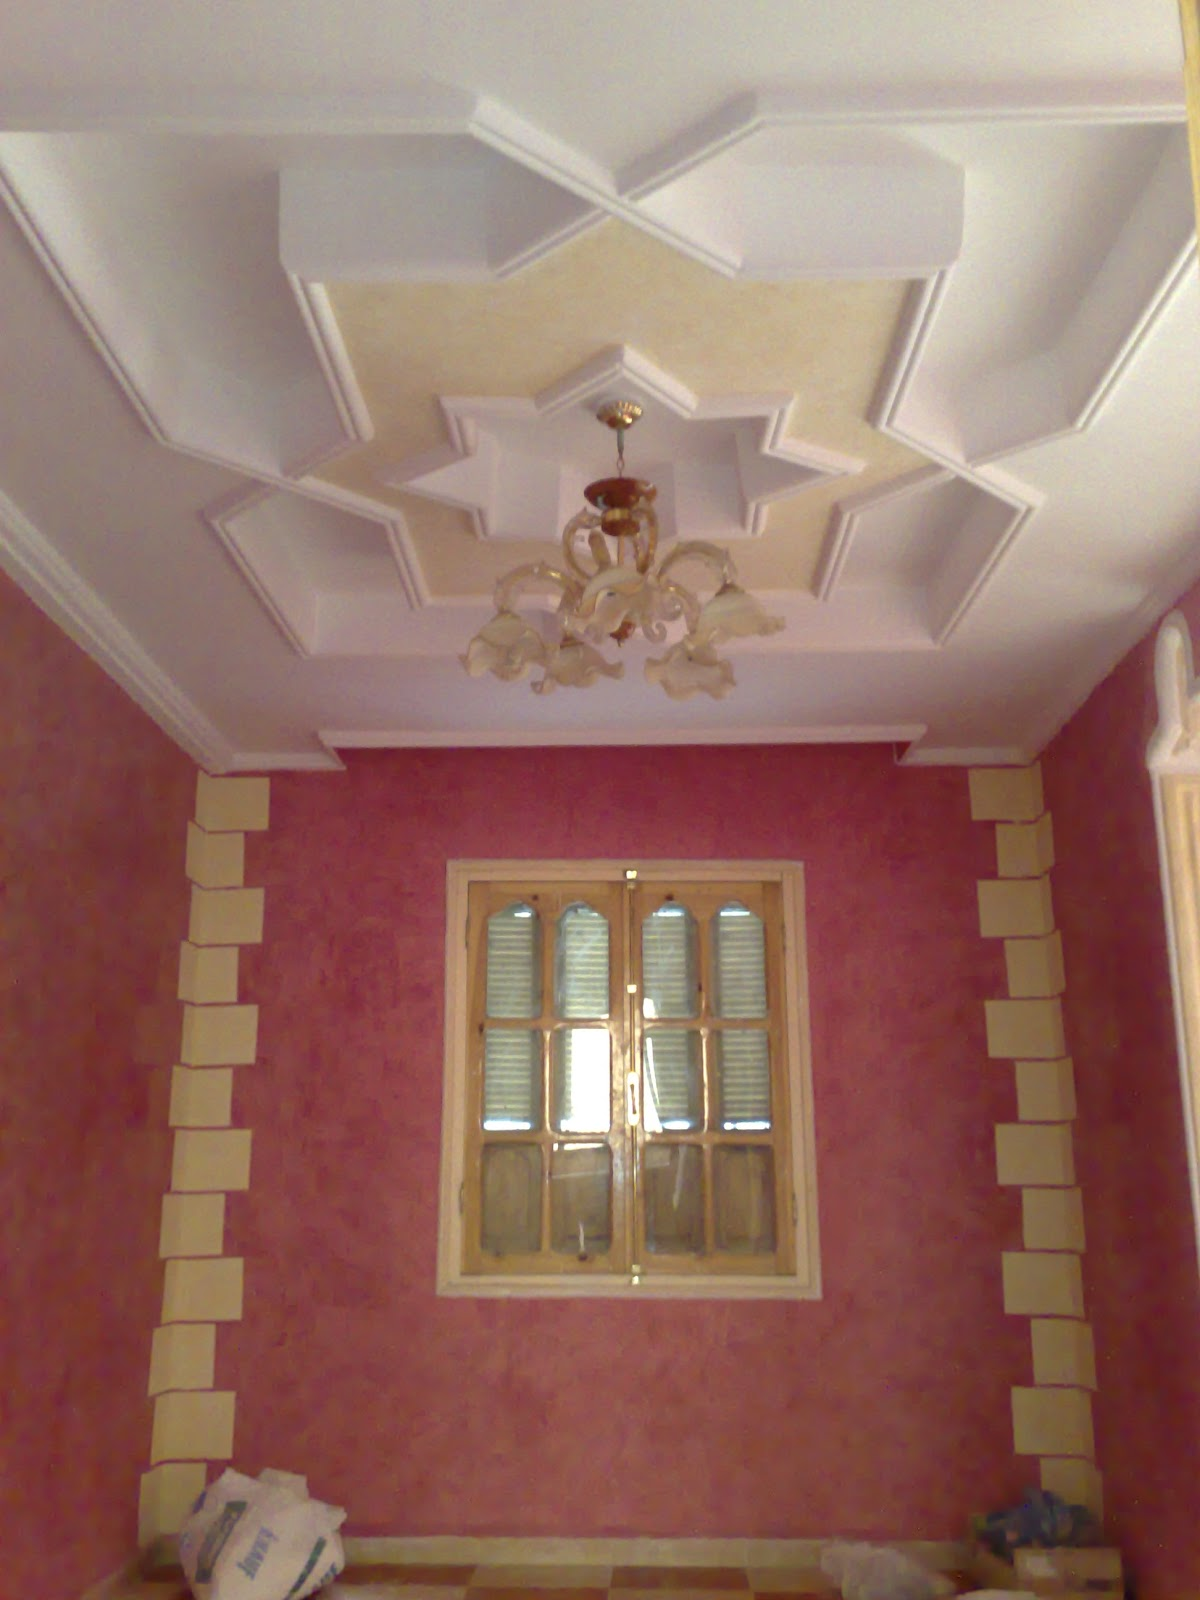 Decoration des plafonds en platre cool decoration plafond for Decoration platre chambre